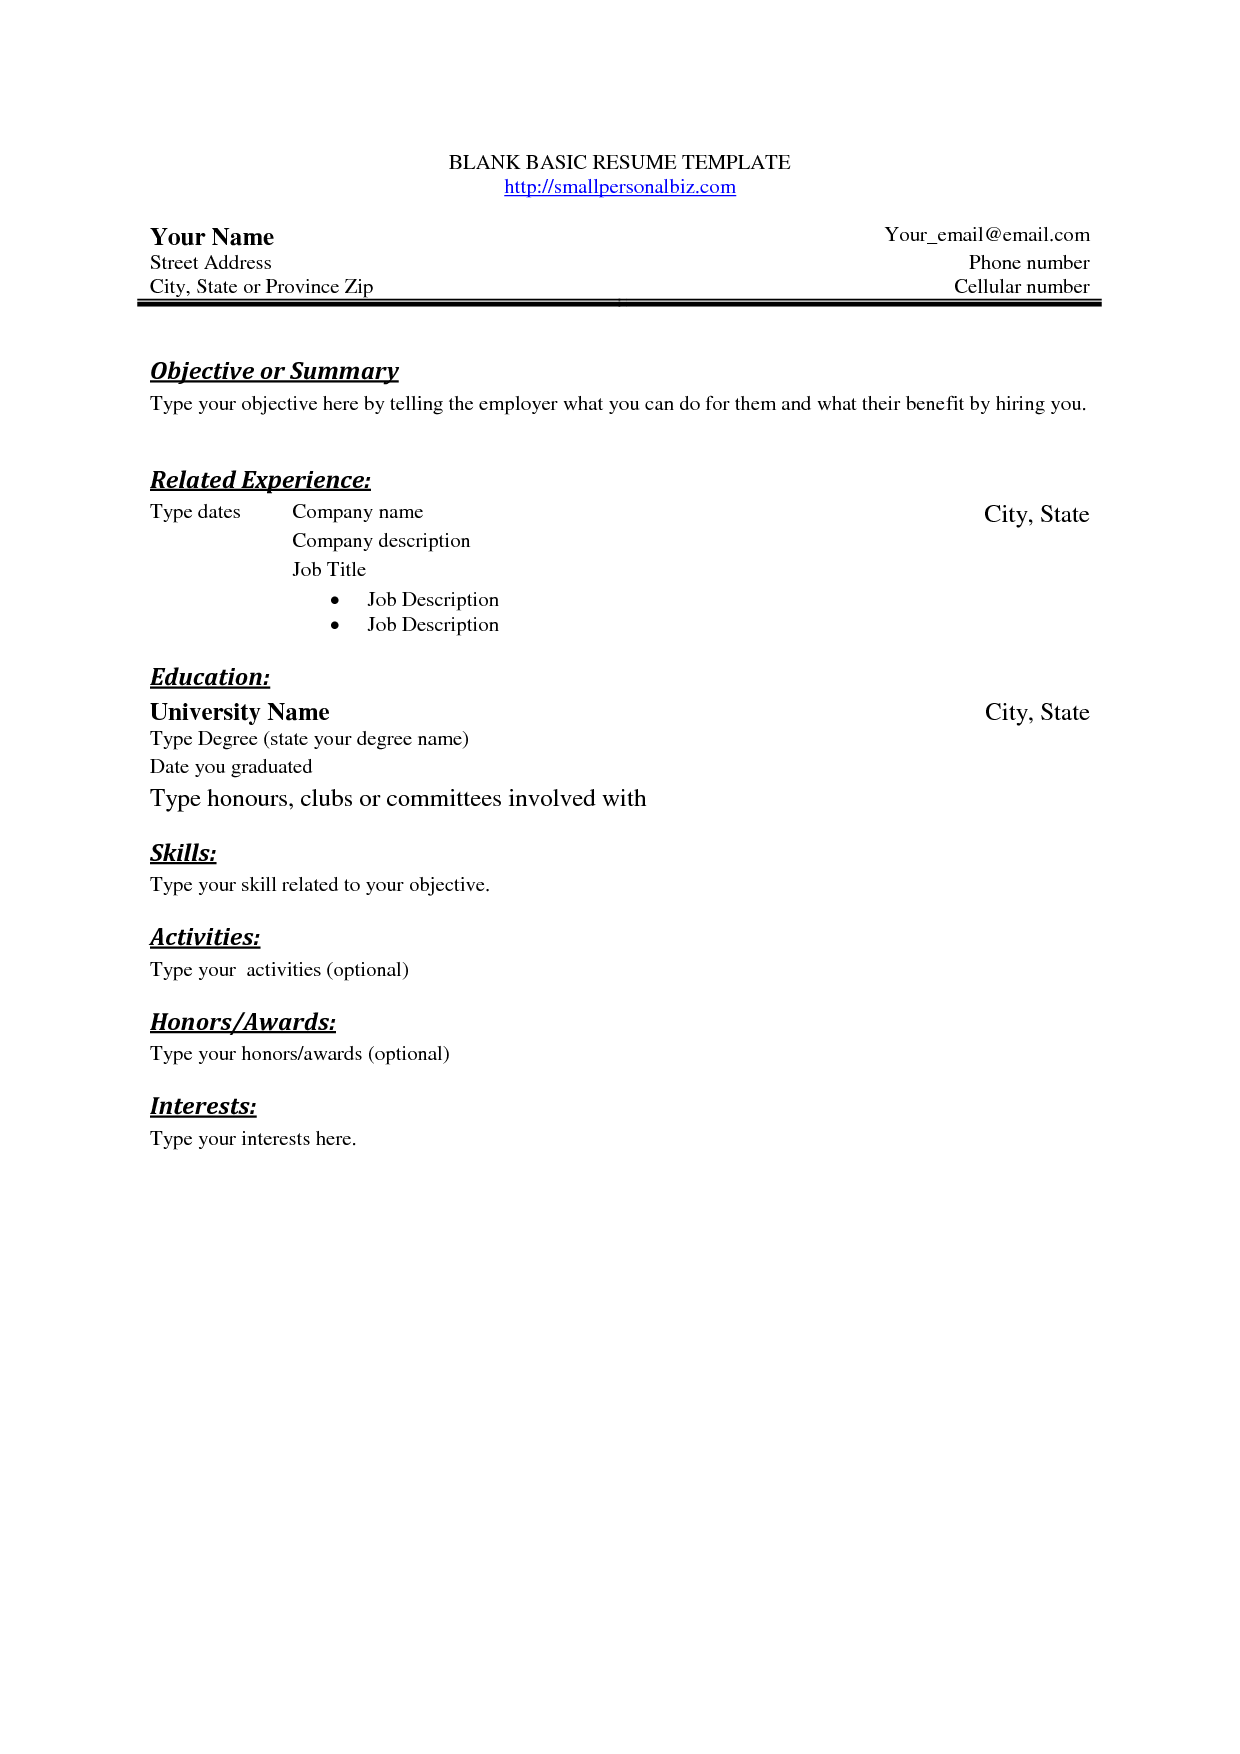 free basic blank resume template free basic sample resume - Blank Resume Template